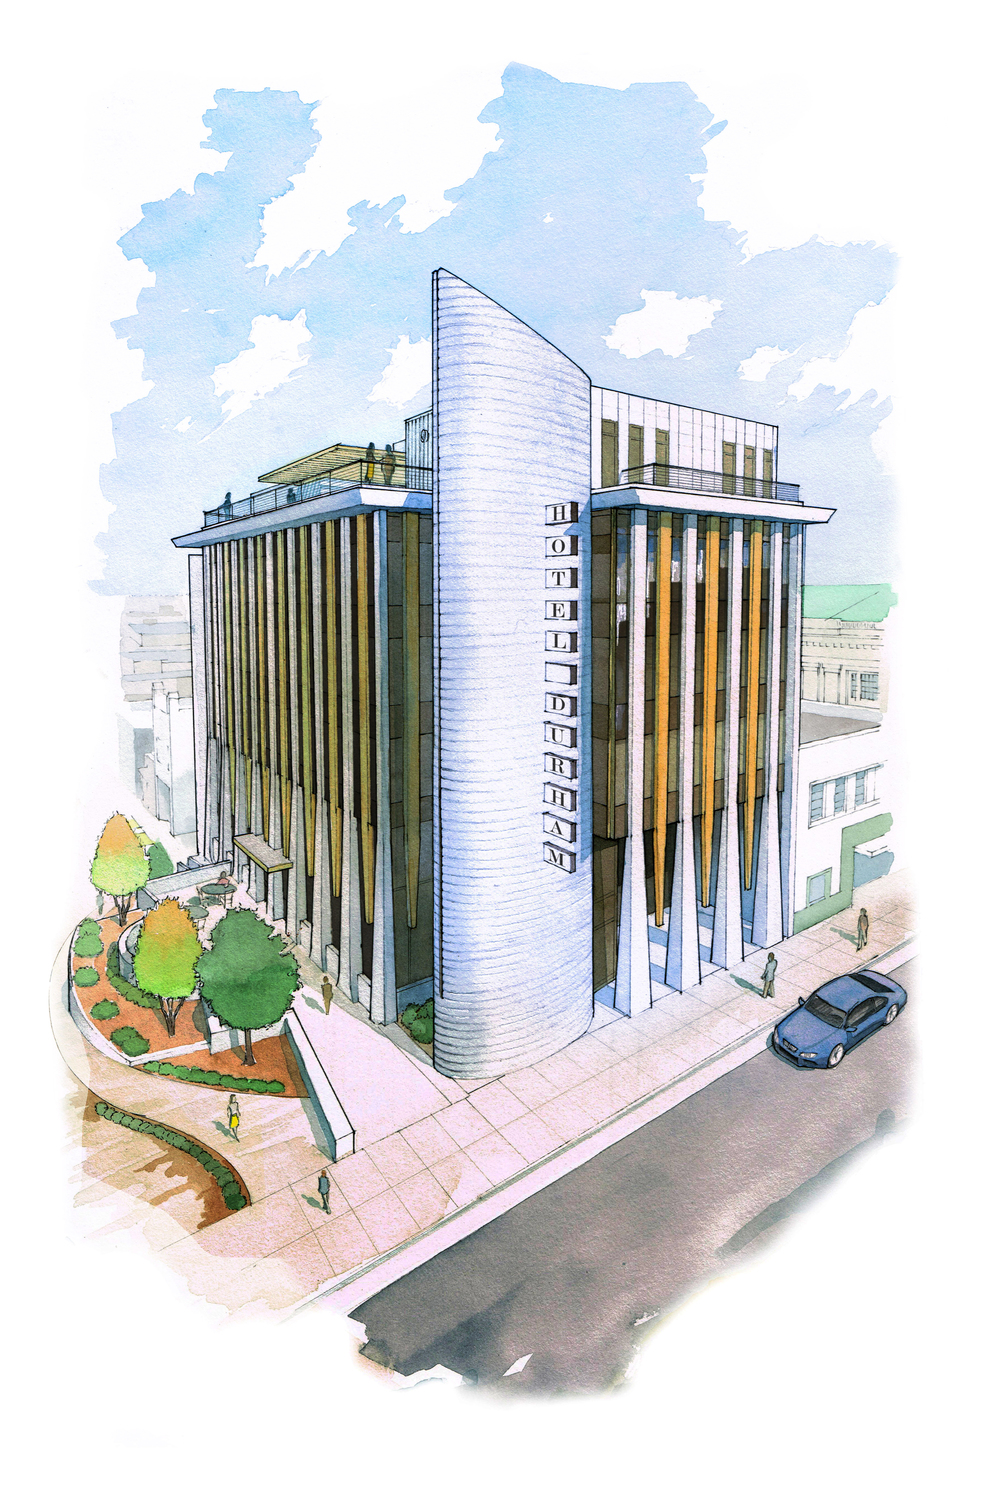 Hotel Durham concept rendering courtesy of Aaron Ede